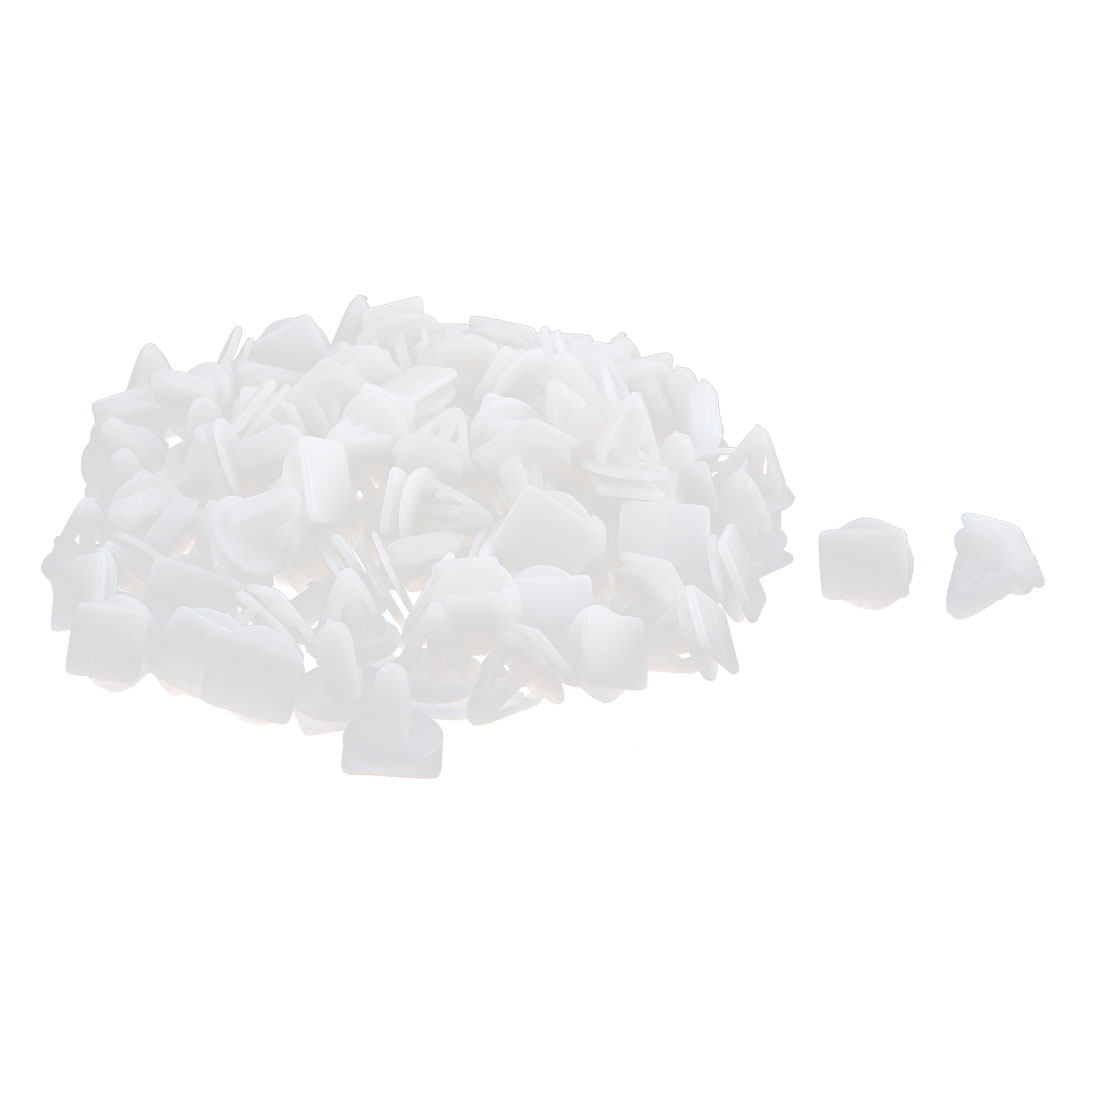 100pcs White Plastic Moulding Trim Rivets Snap Fastener Clips 10mm Hole